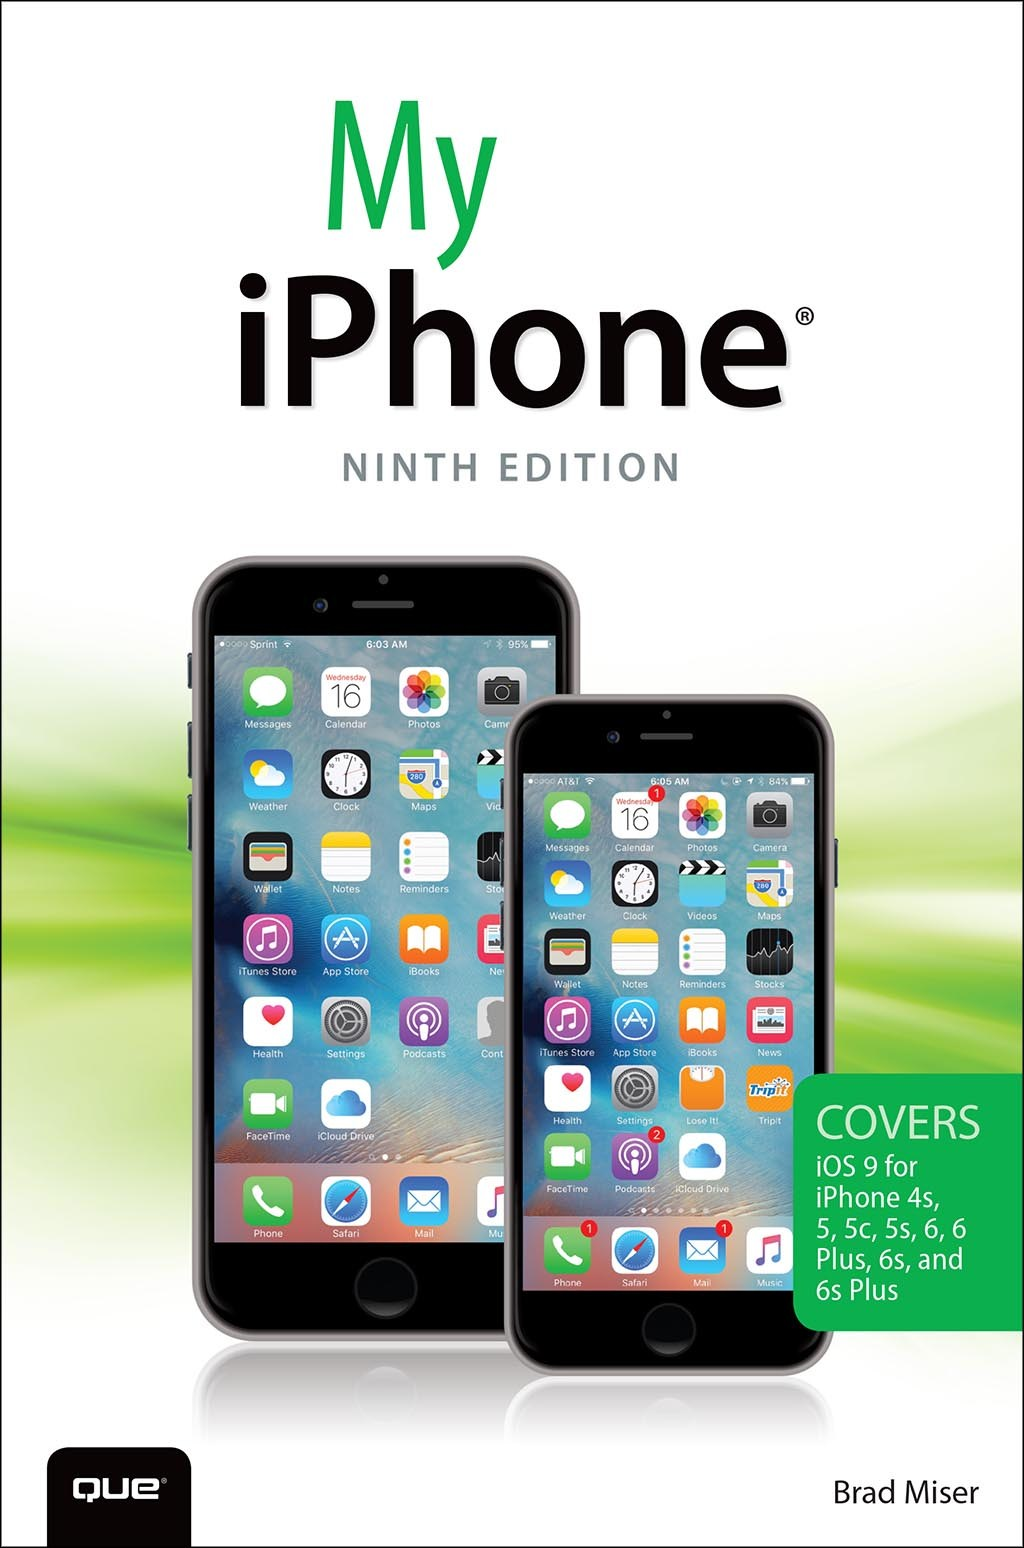 My iPhone (Covers iOS 9 for iPhone 6s/6s Plus, 6/6 Plus, 5s/5C/5, and 4s), 9th Edition